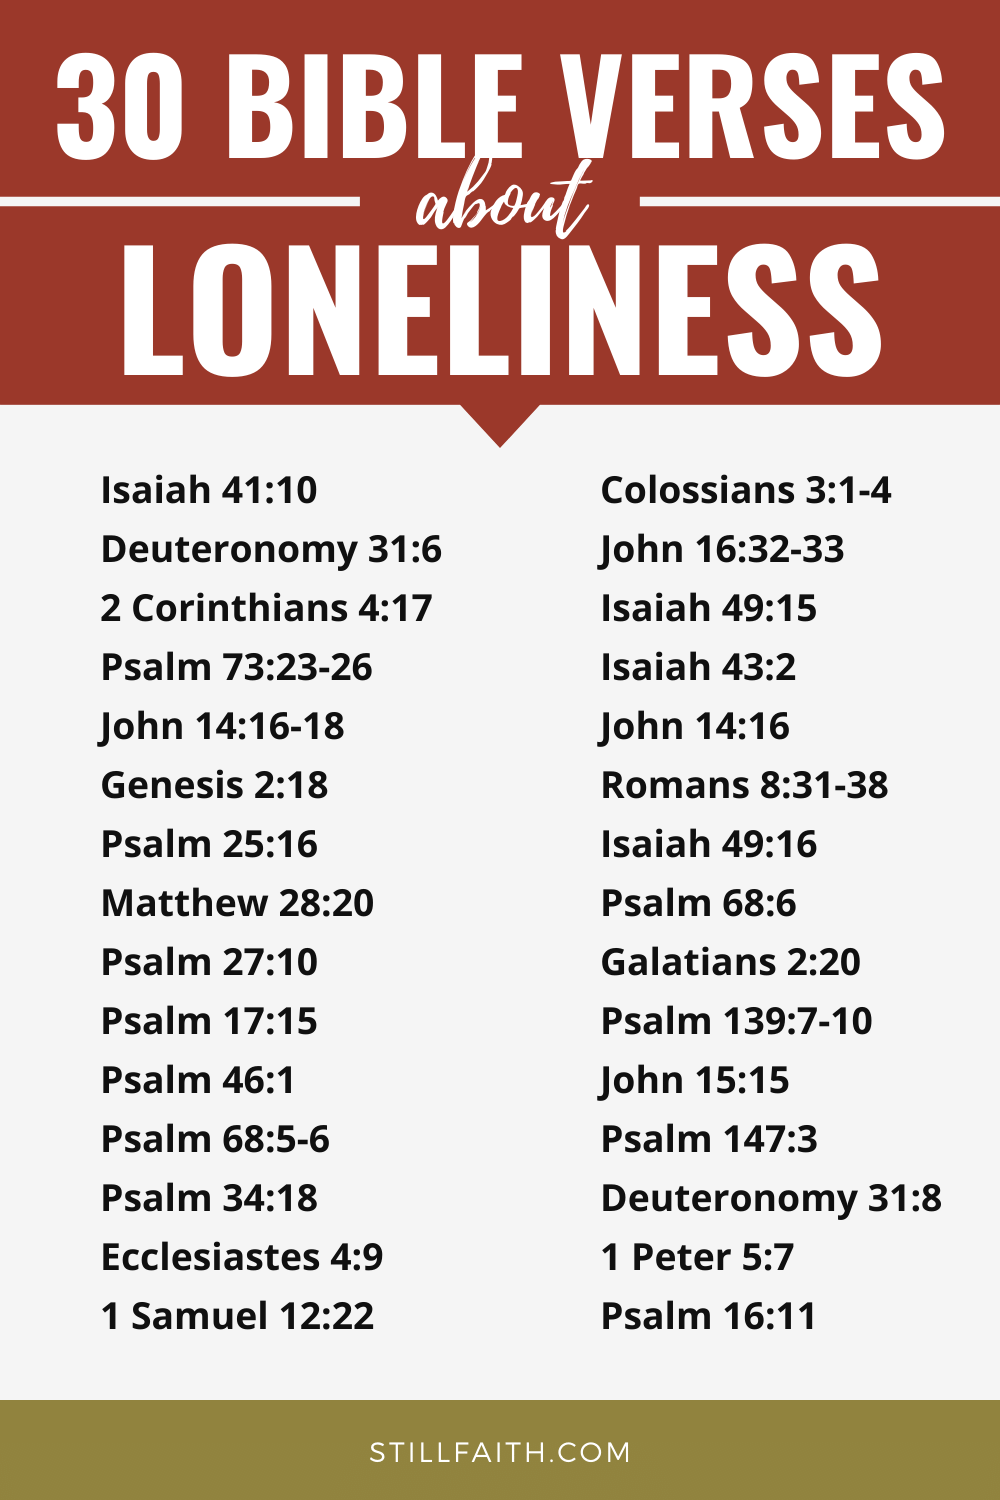 222 Bible Verses about Loneliness